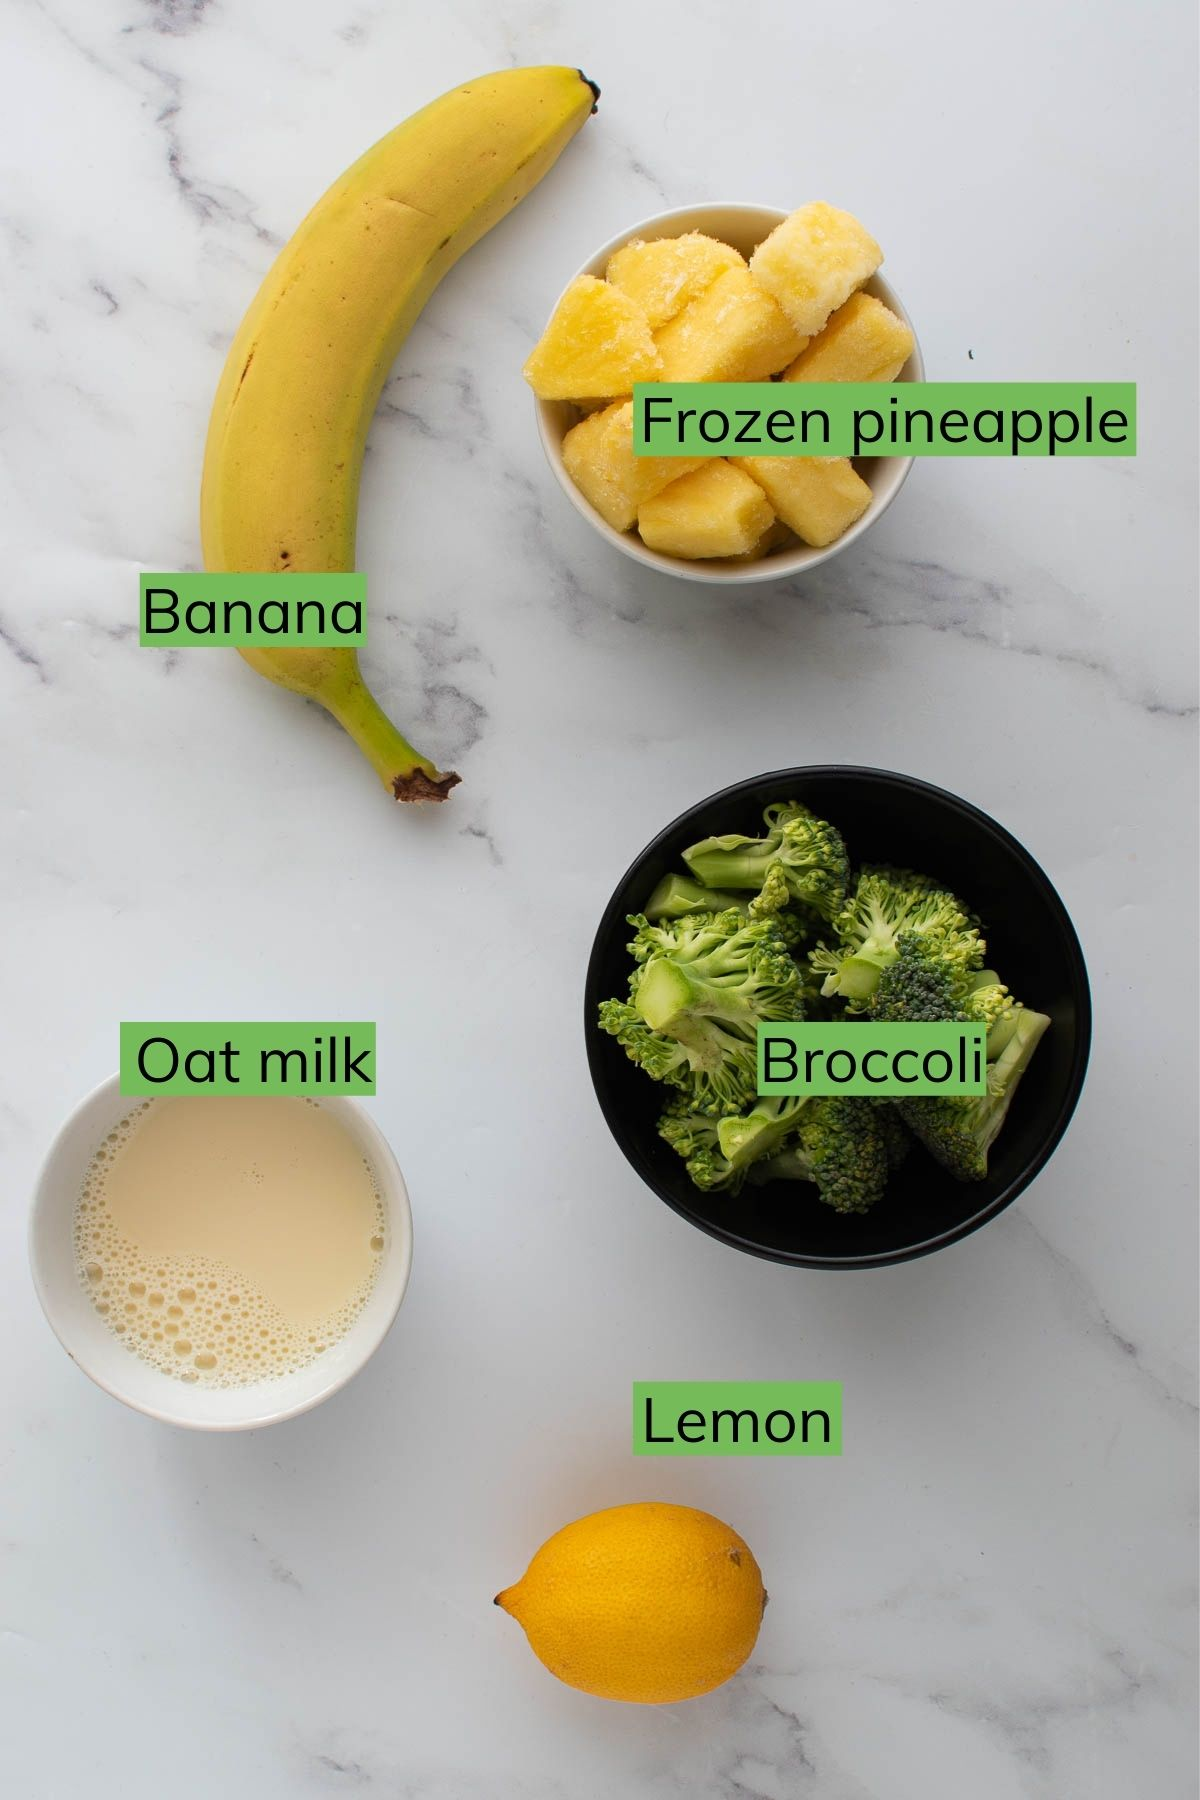 Ingredients to make smoothie with broccoli and pineapple.